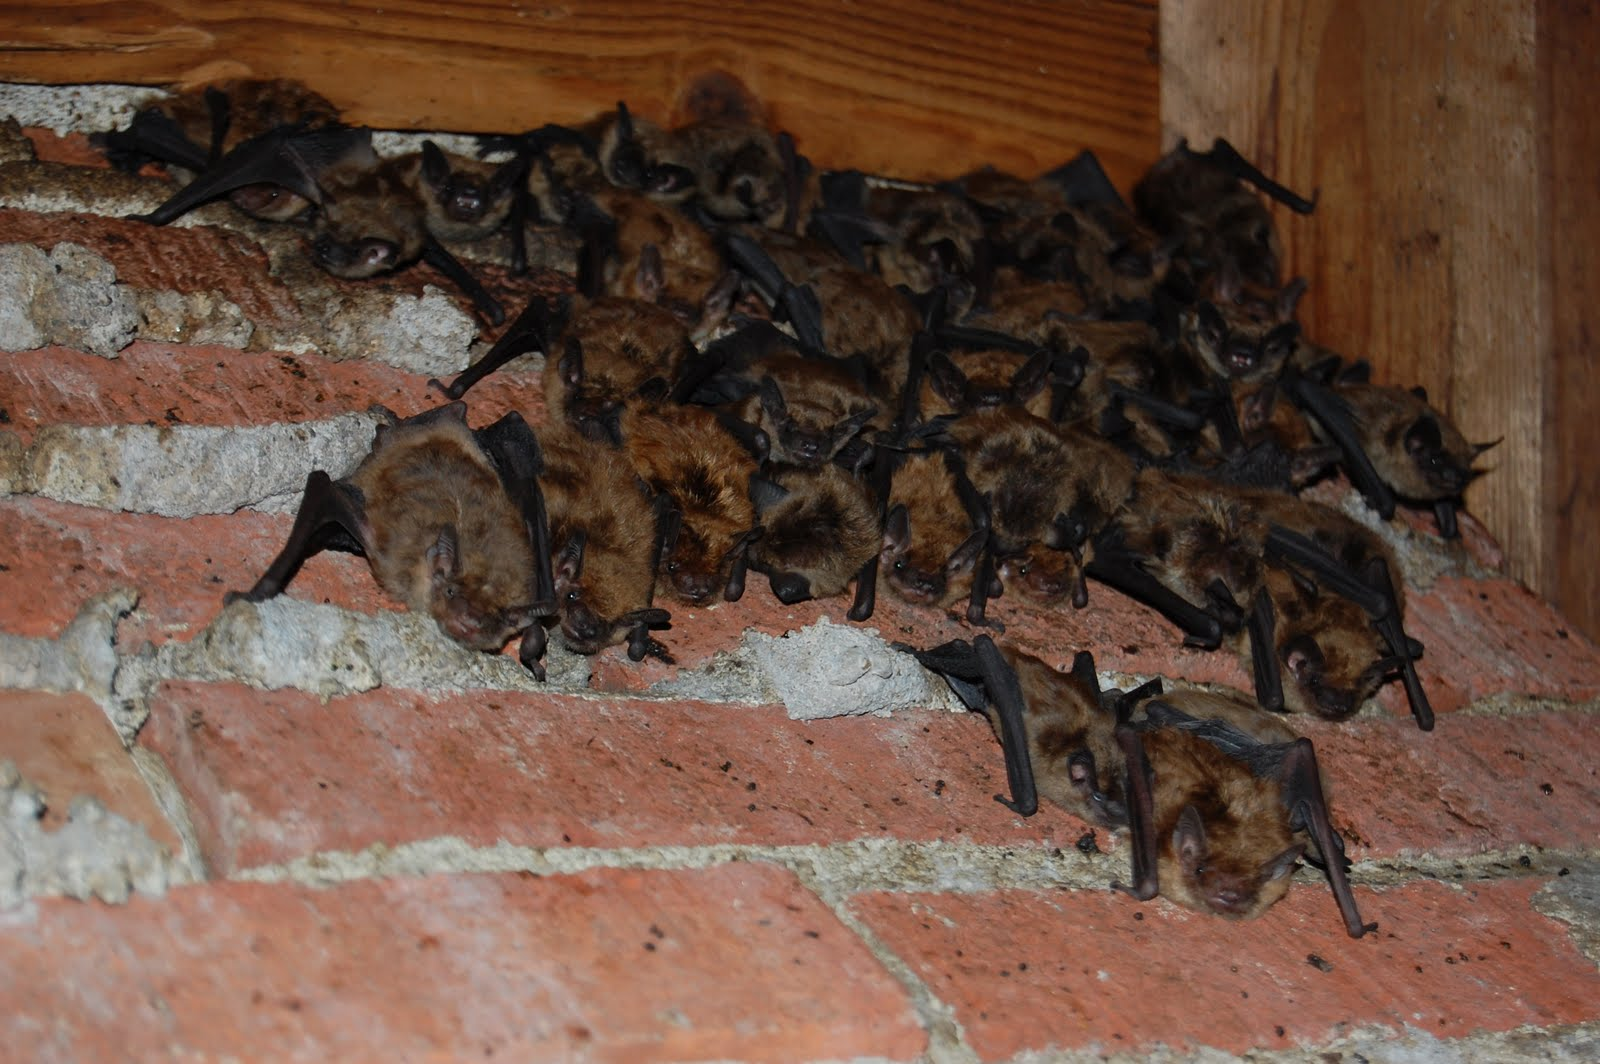 How To Get Rid Of Pests In Your Attic